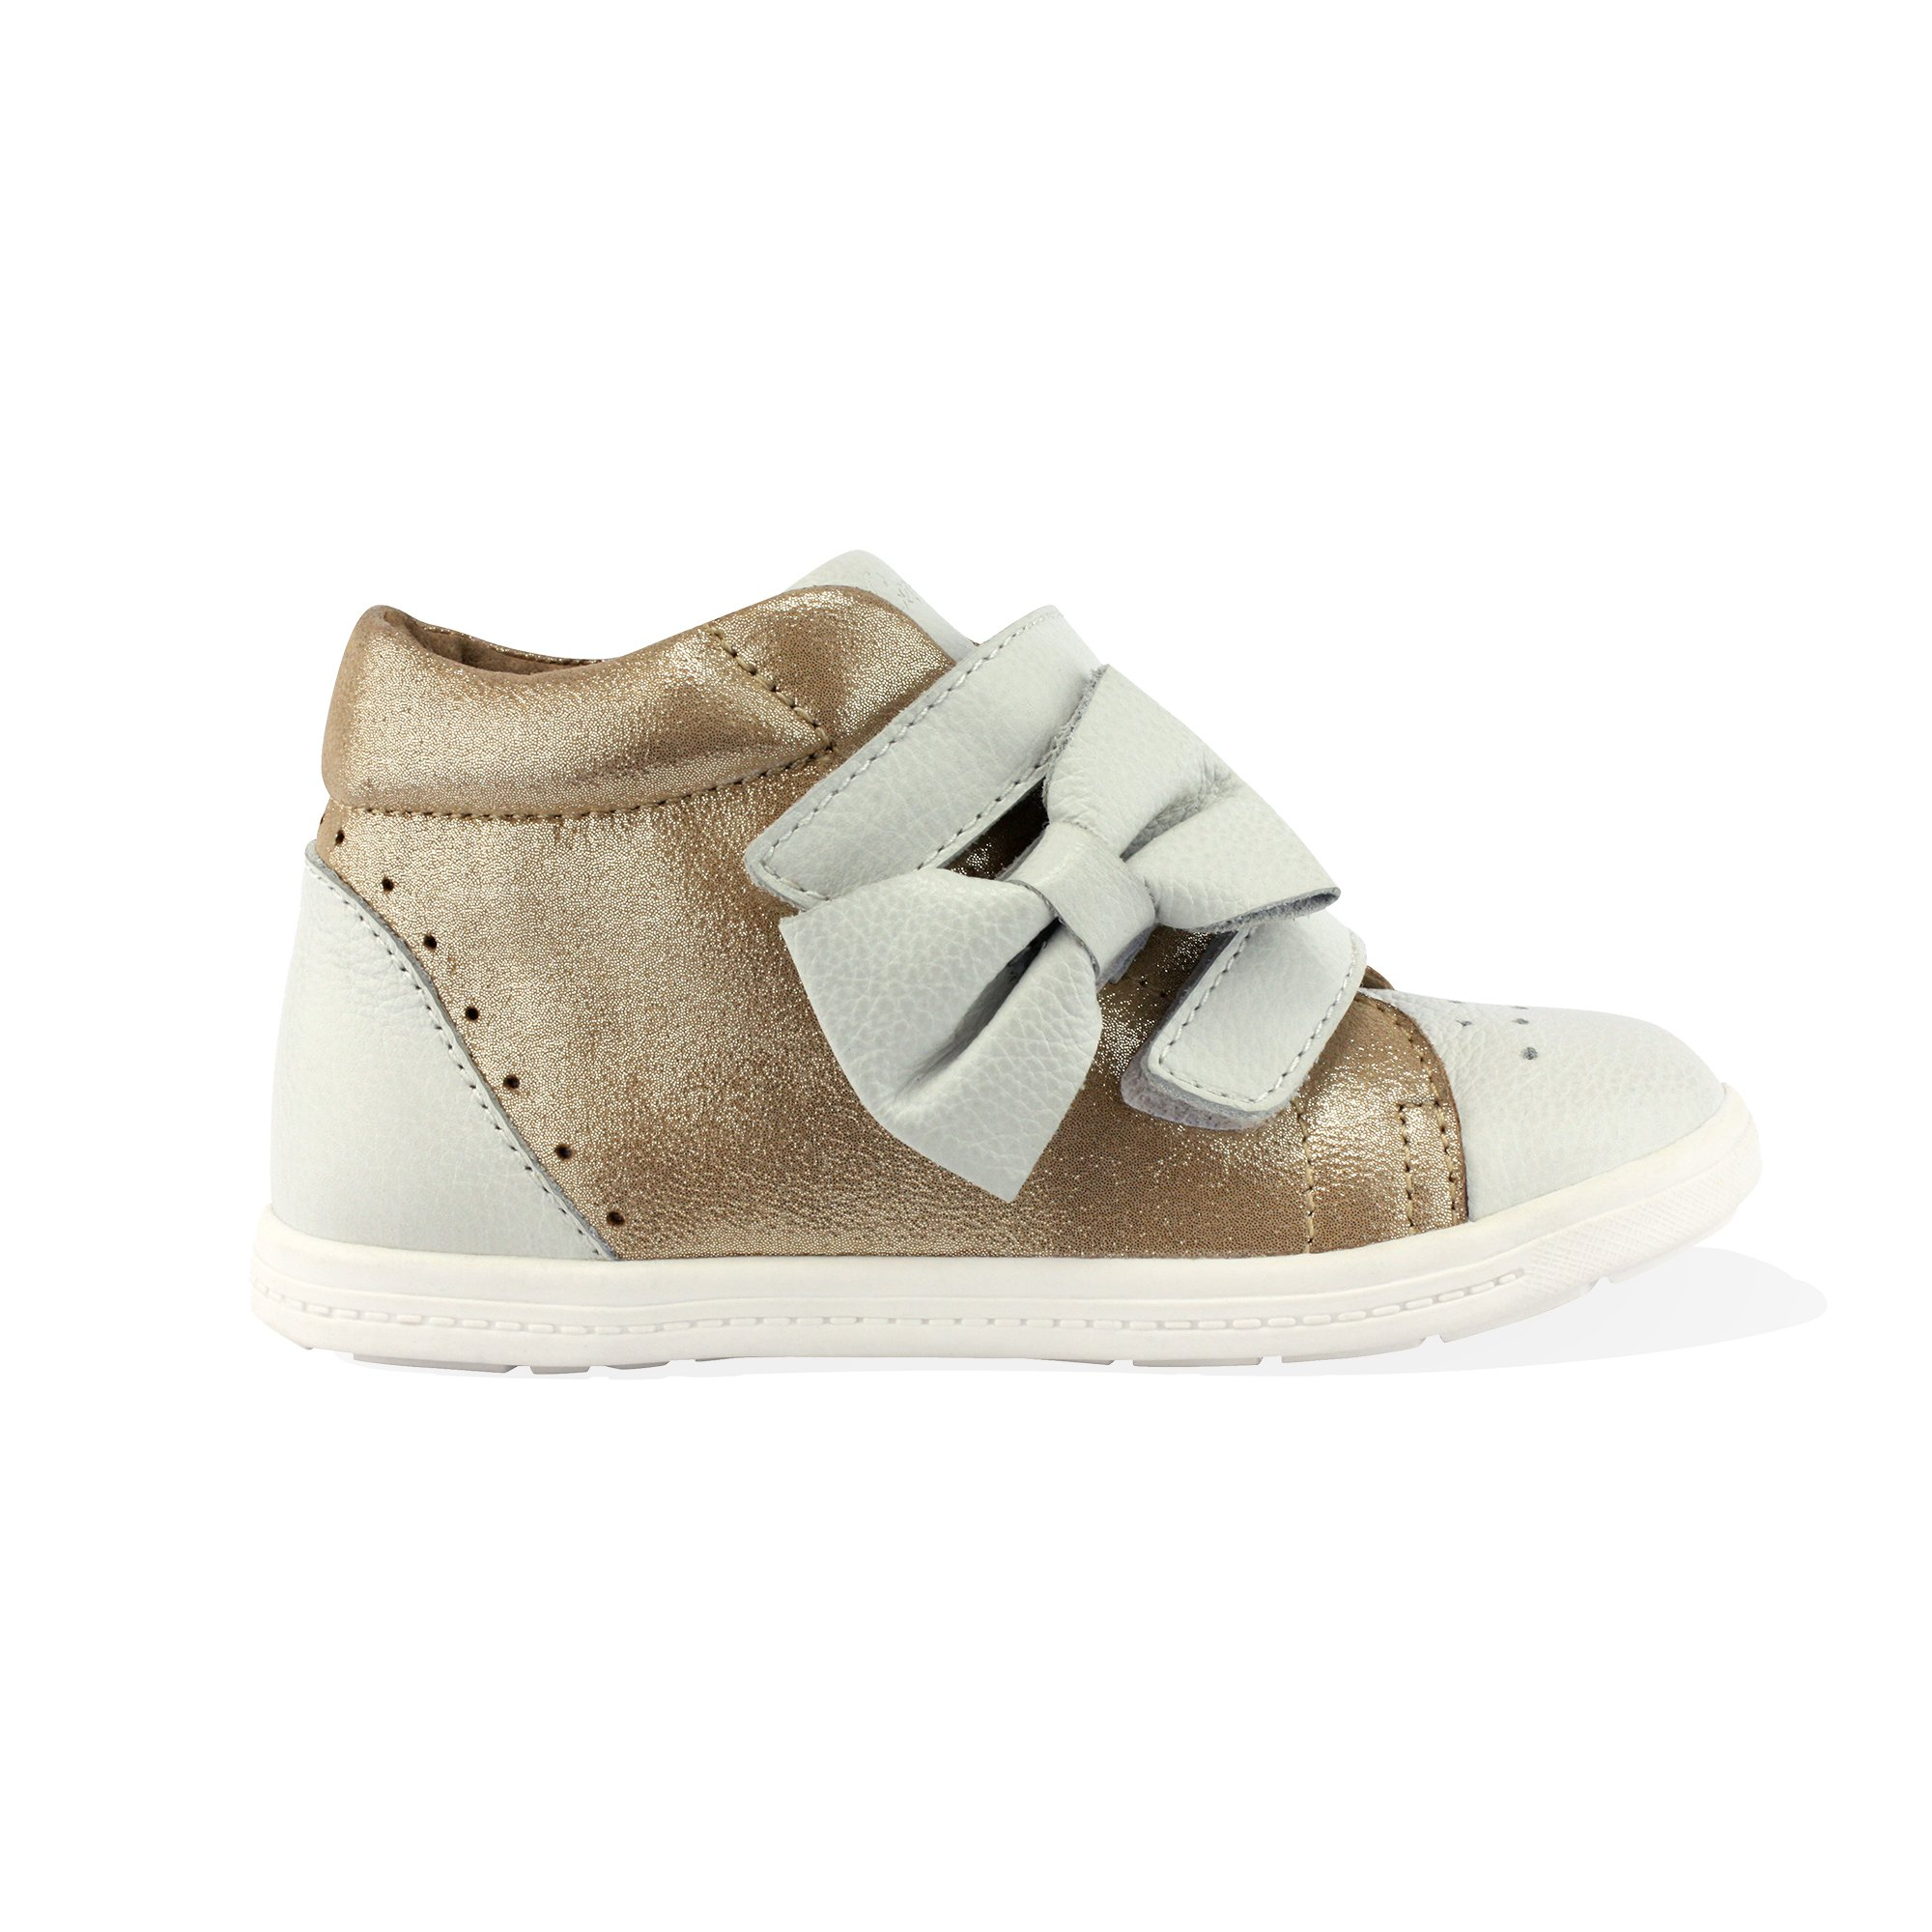 Lenny Lu Girls Fashionista High Top Sneaker Sneaker in Gold and Beige, Size 12